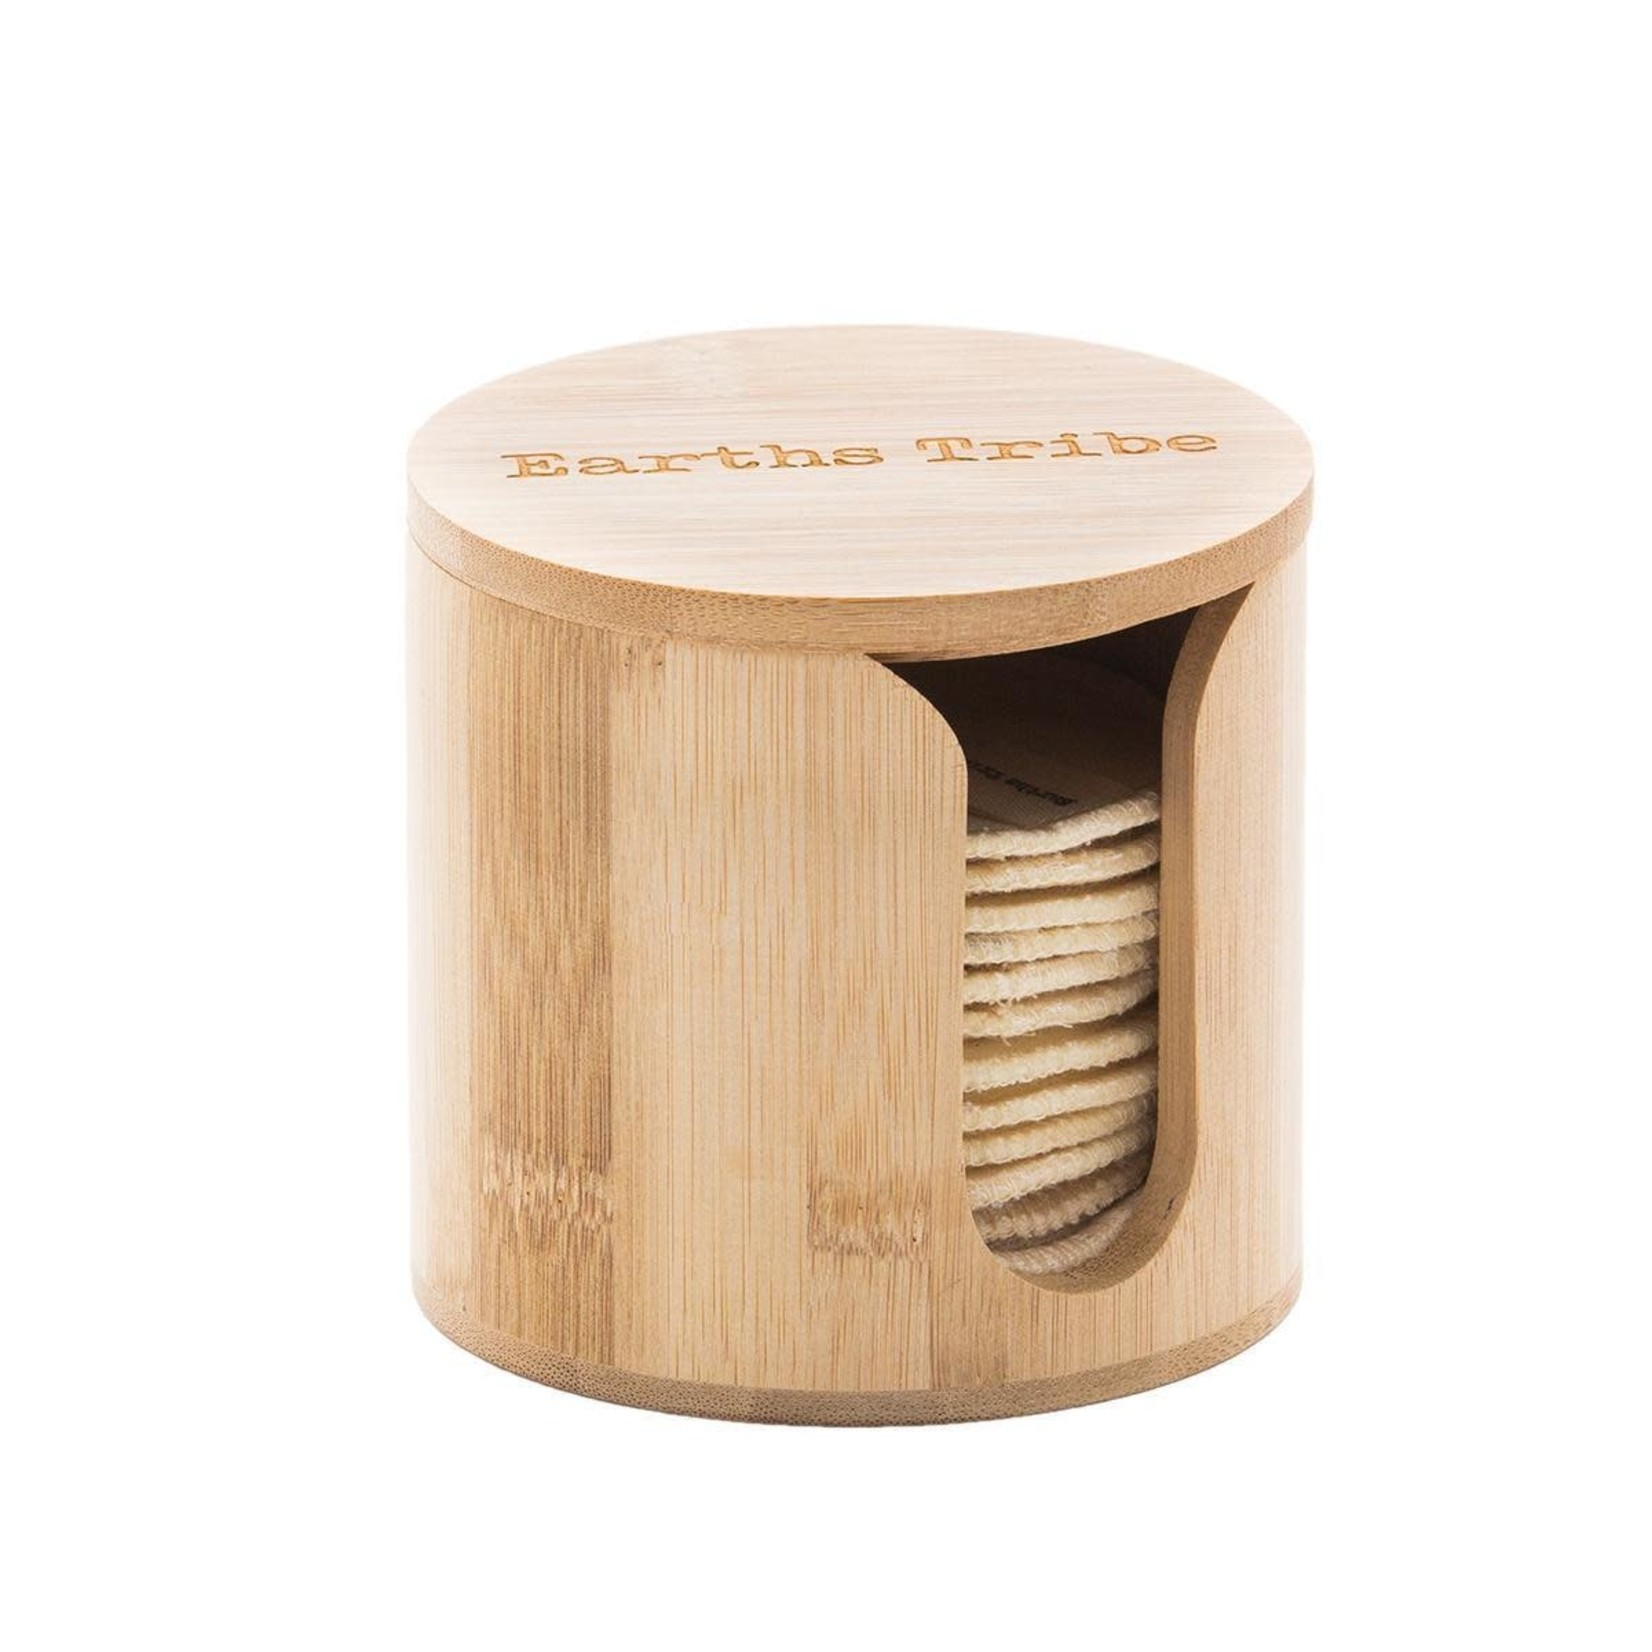 Earths Tribe Earths Tribe Bamboo Make up Pad Holder